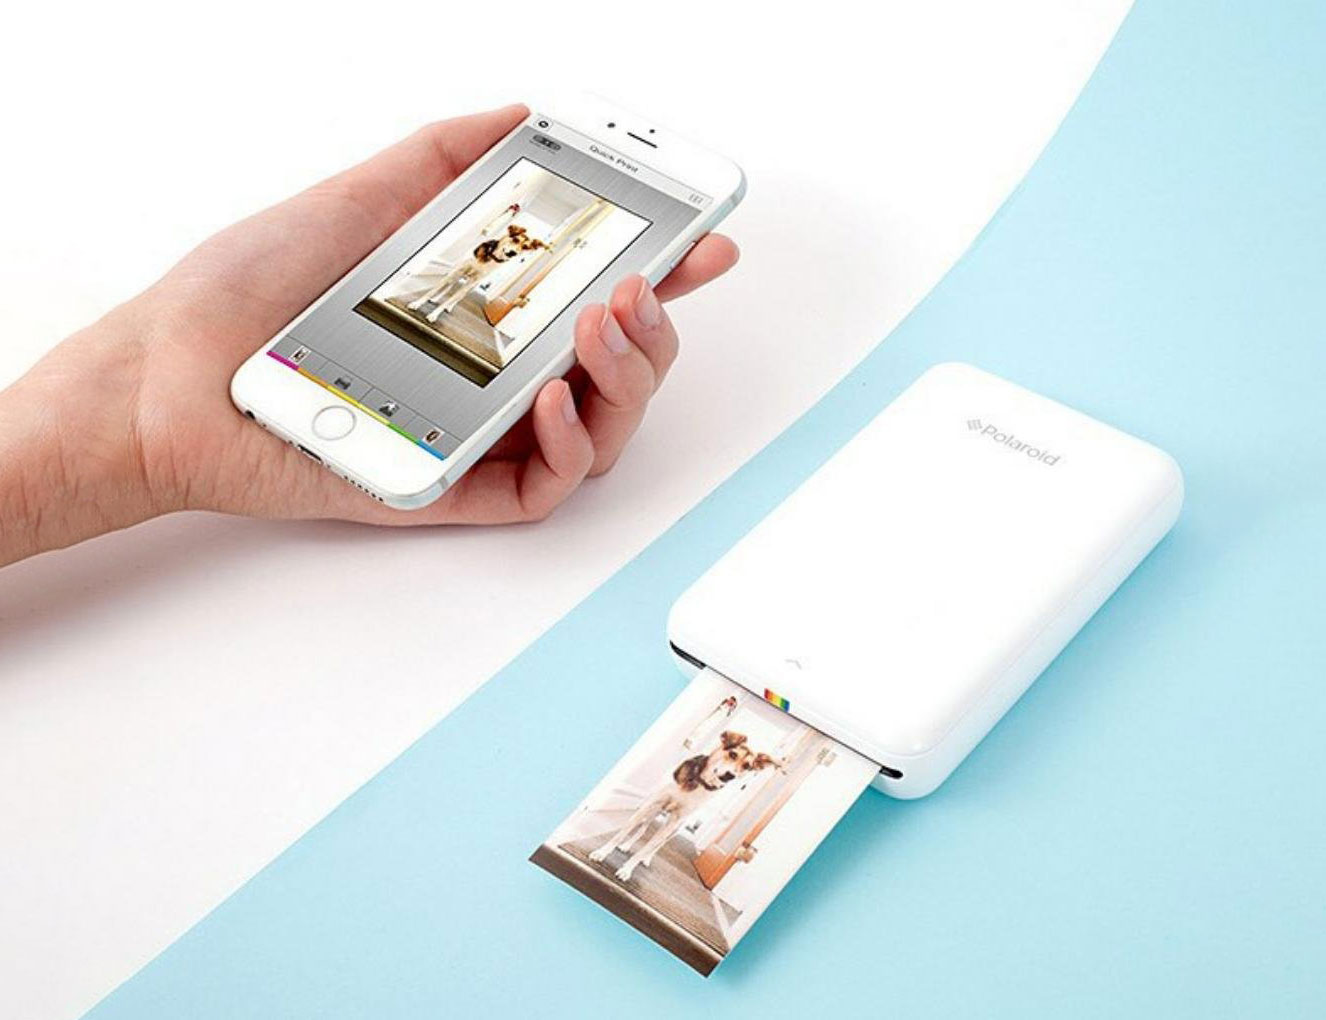 The Best Portable Photo Printers for Getting Those Memories Off Your Phone for Keeps